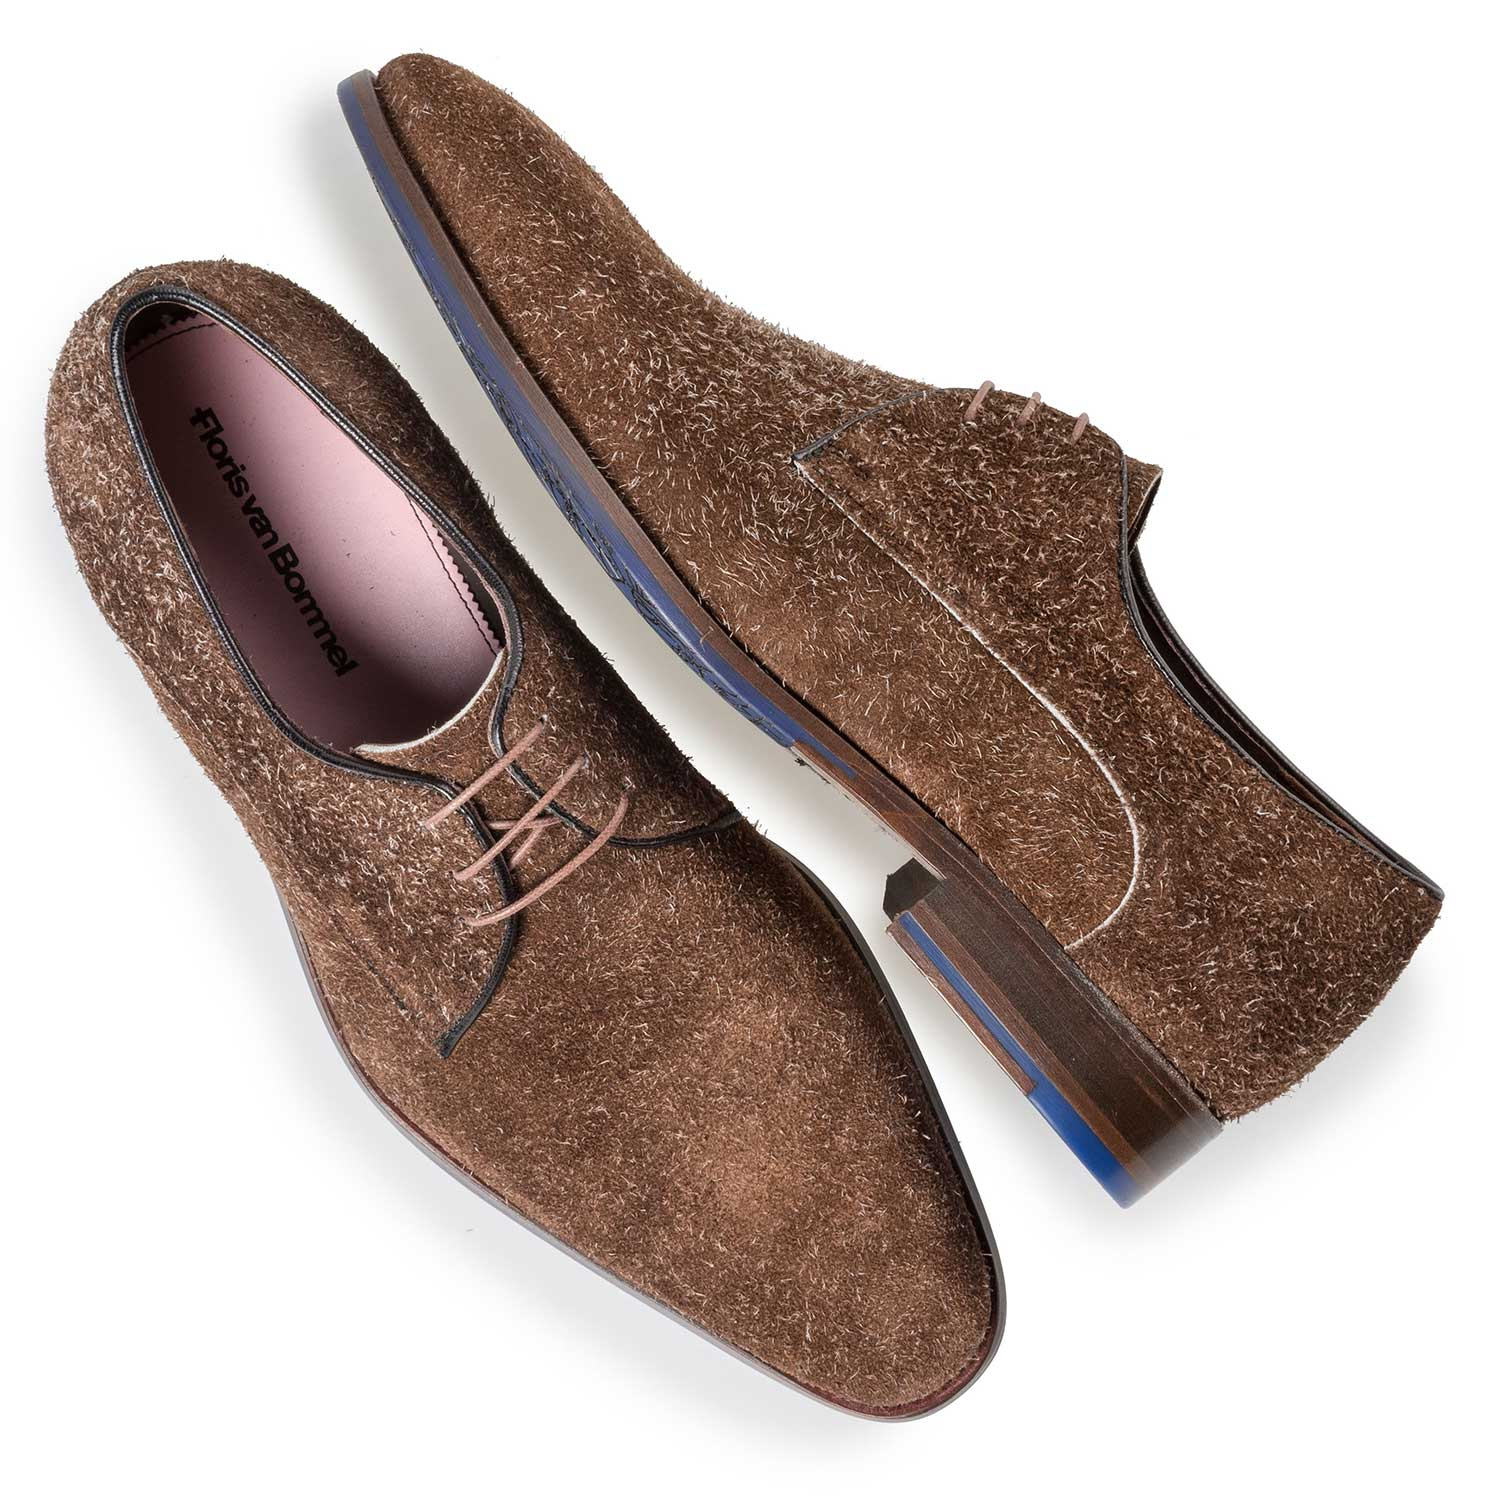 18072/01 - Brown buffed suede leather lace shoe